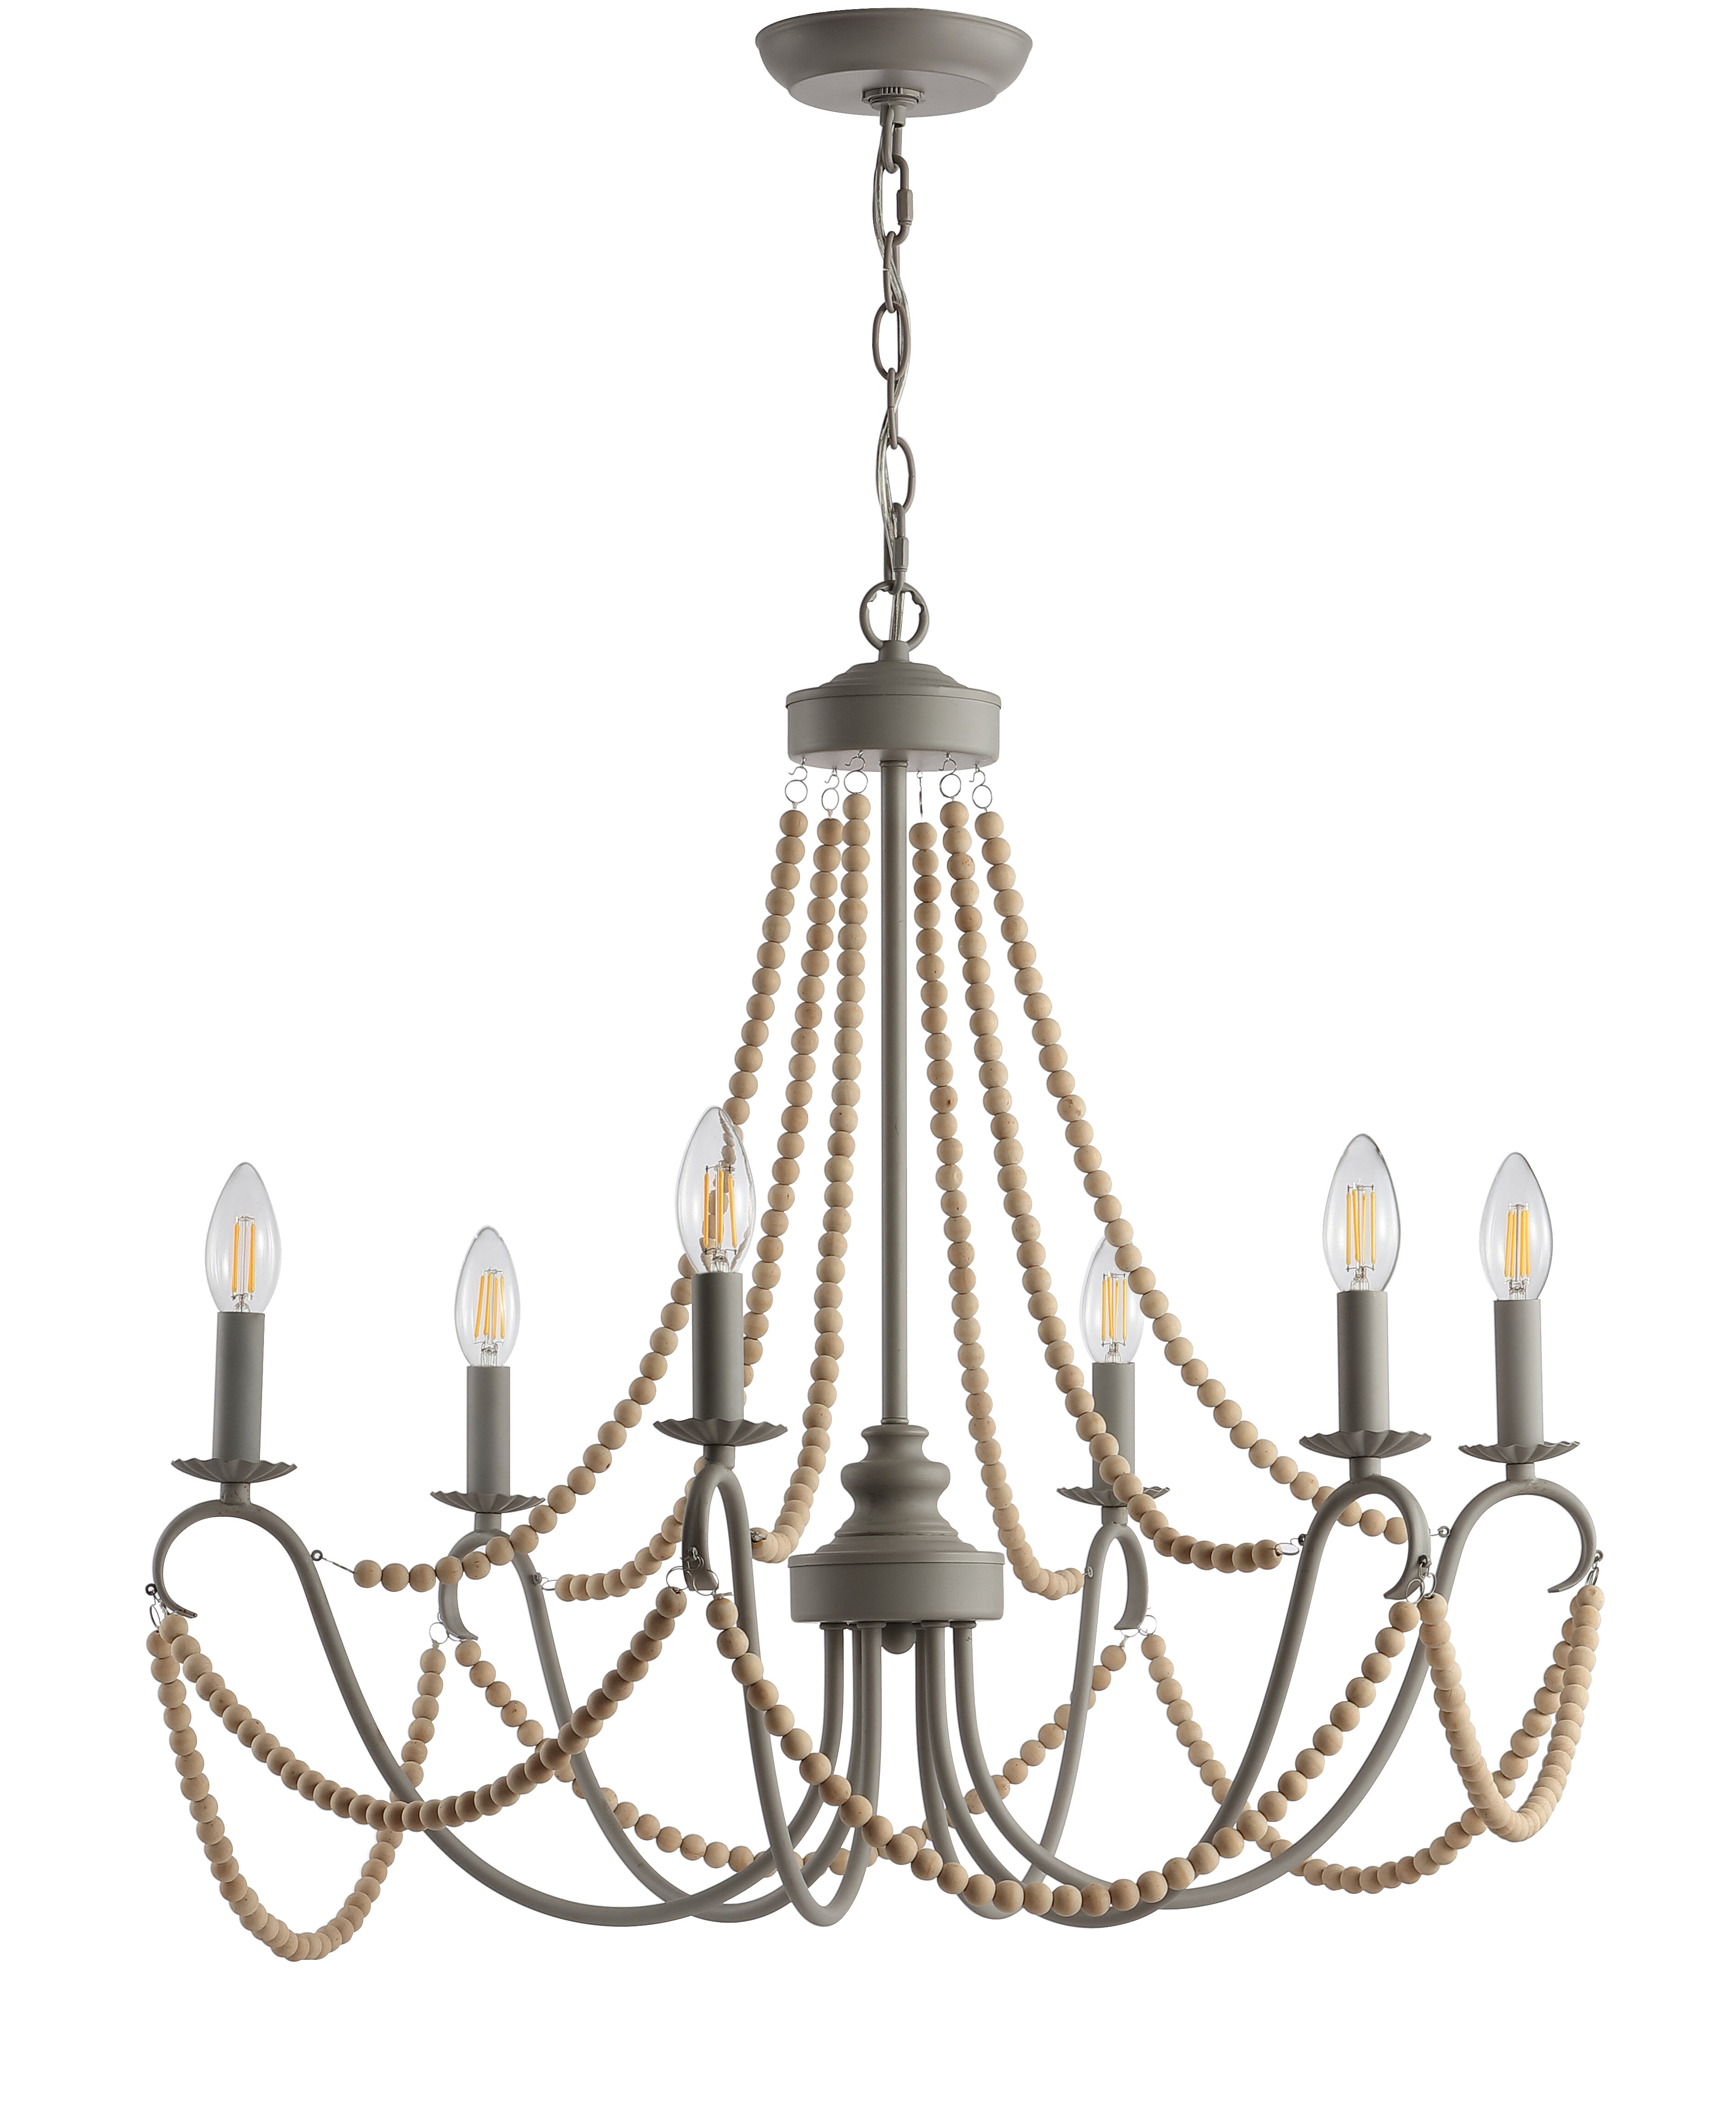 One Allium Way Carnes 6 Light Candle Style Chandelier Regarding Diaz 6 Light Candle Style Chandeliers (View 12 of 30)